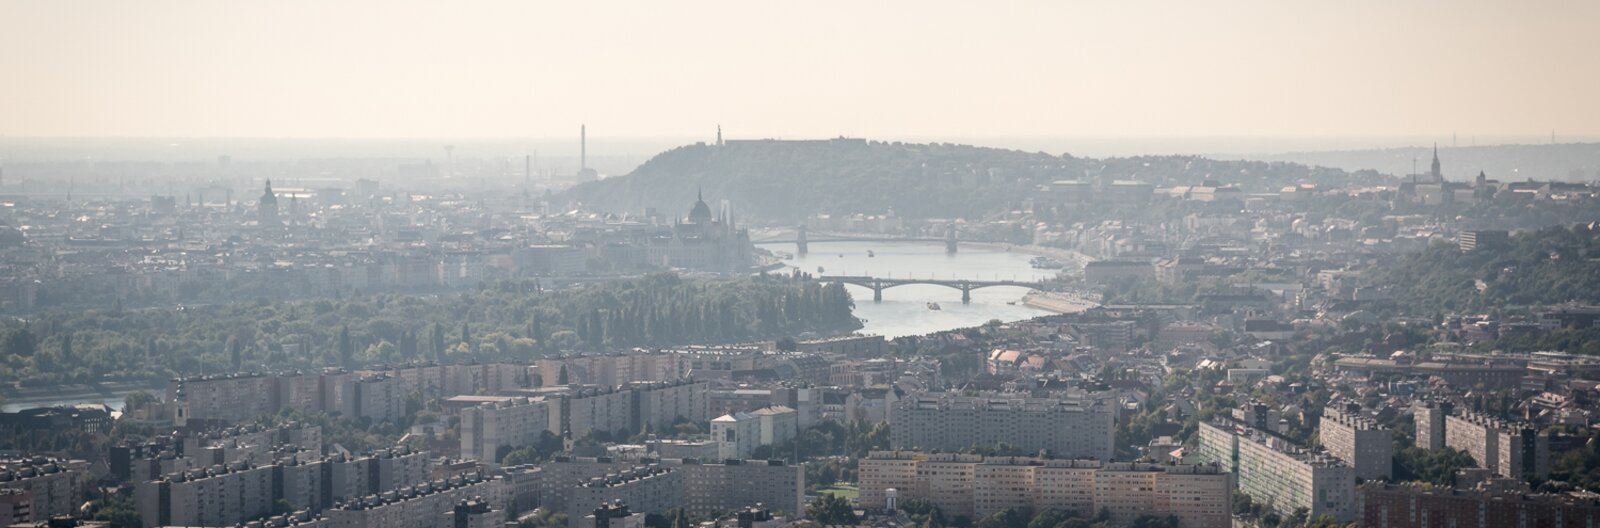 The top 10 tallest buildings of Budapest